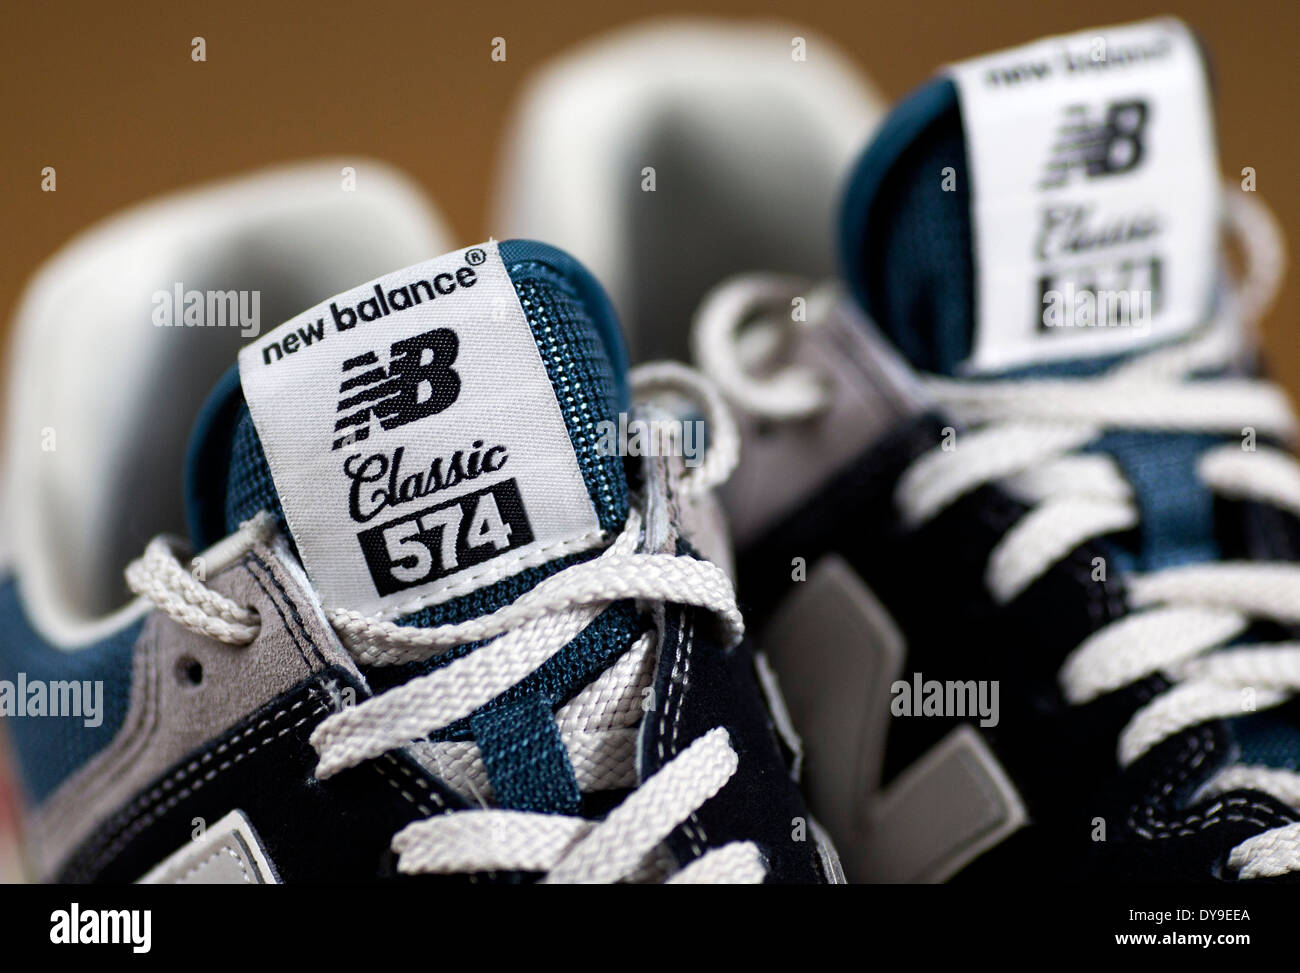 New Balance Sneaker Photos & New Balance Sneaker Images Alamy